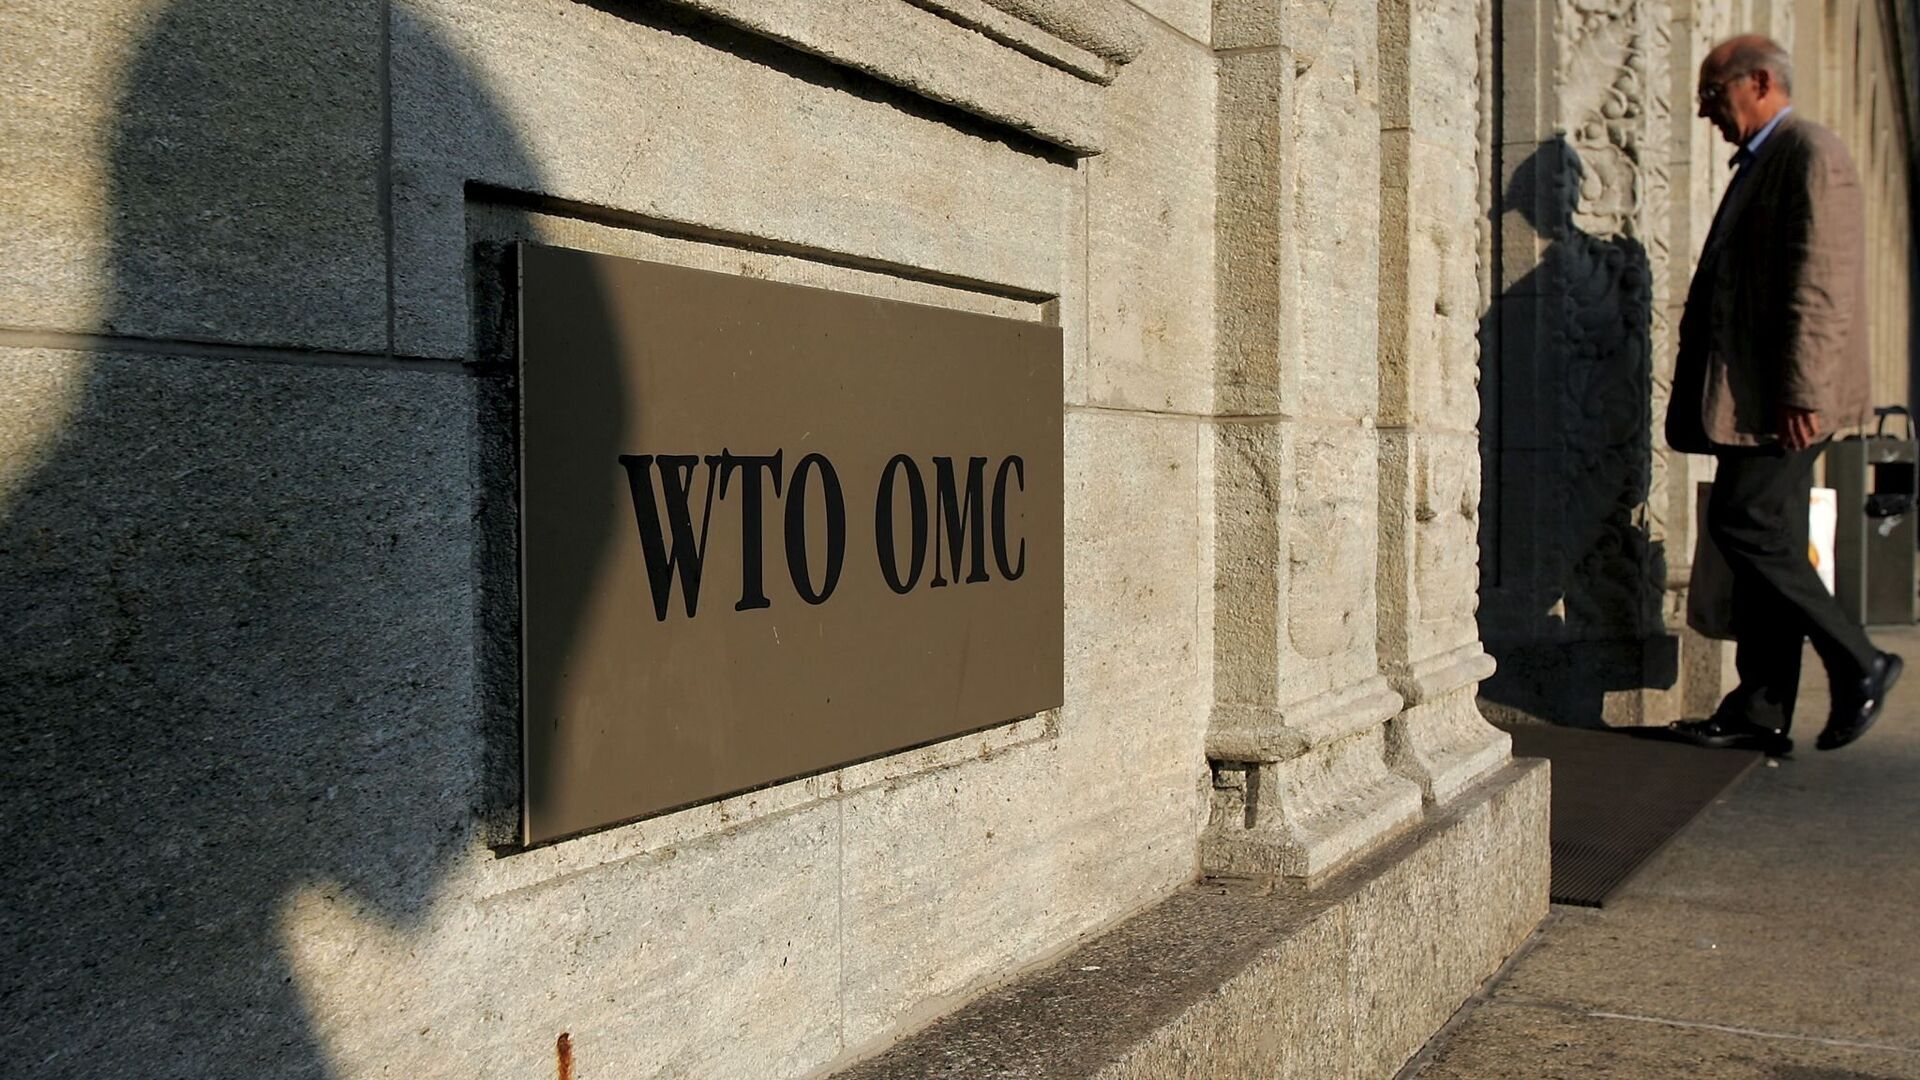 The shadow of a sculpture is reflected on the World Trade Organisation, WTO sign near the entrance of the headquarters, in Geneva (File) - Sputnik Polska, 1920, 26.07.2021